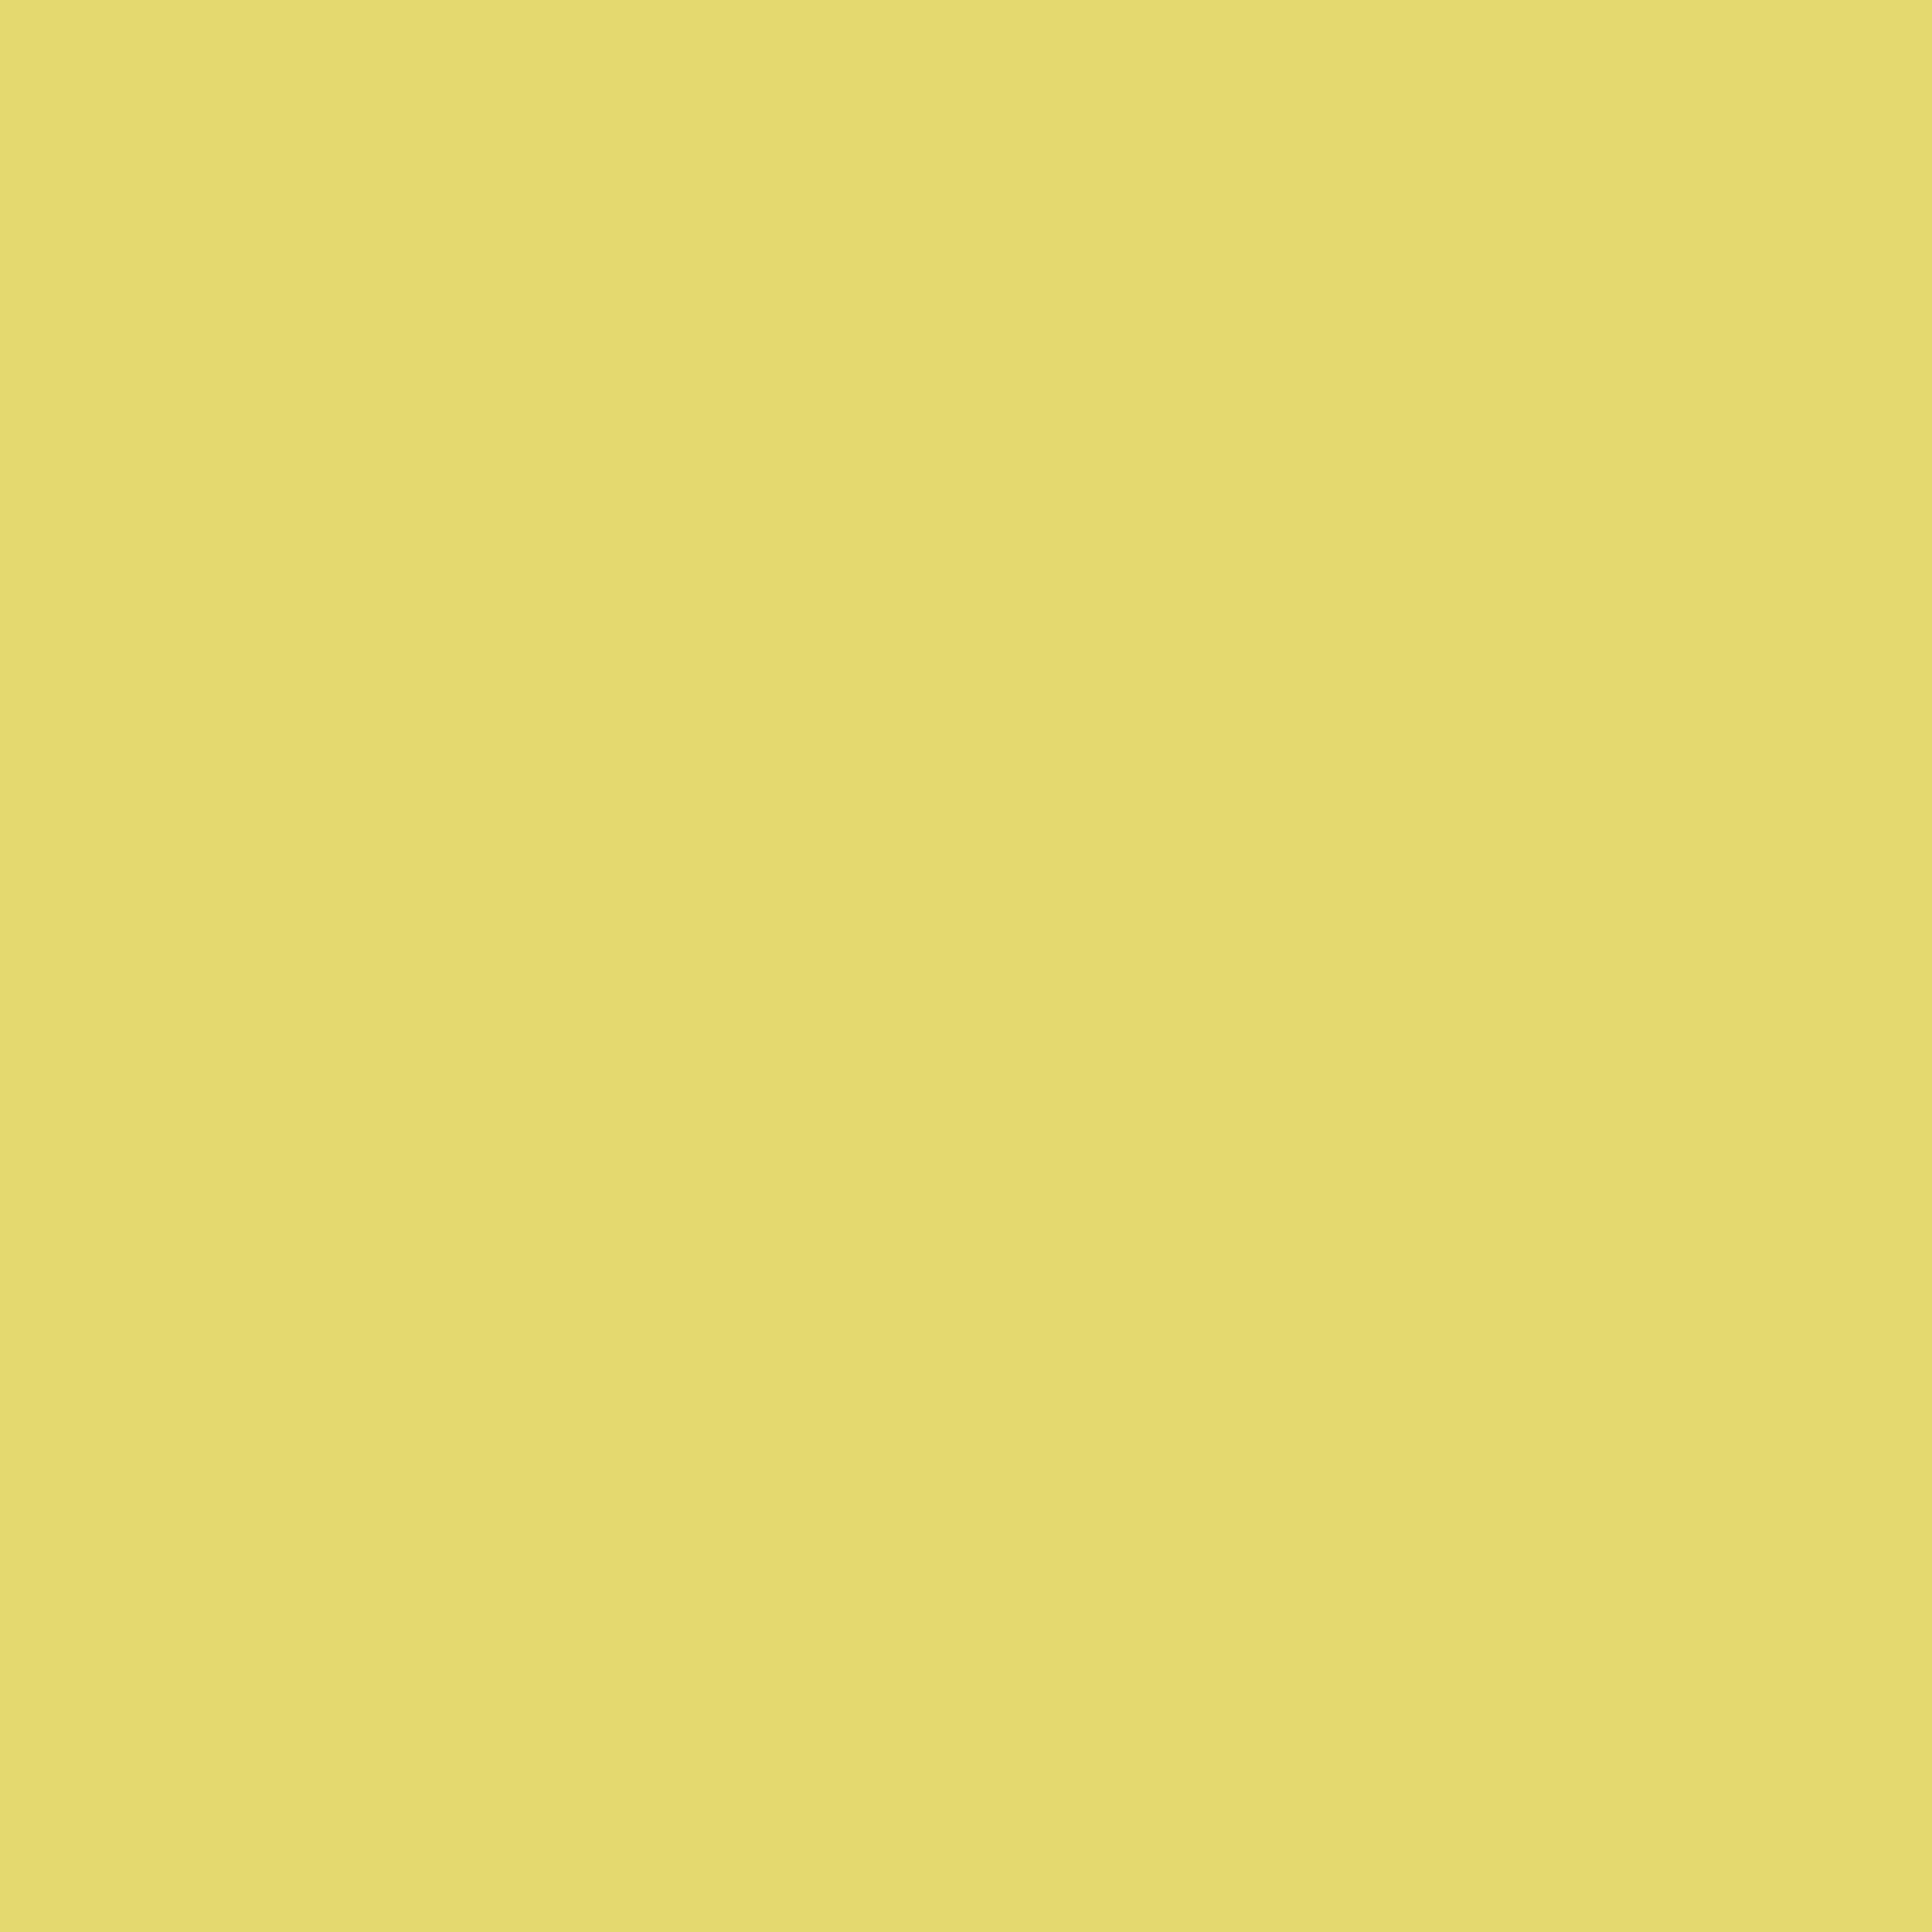 3600x3600 Straw Solid Color Background